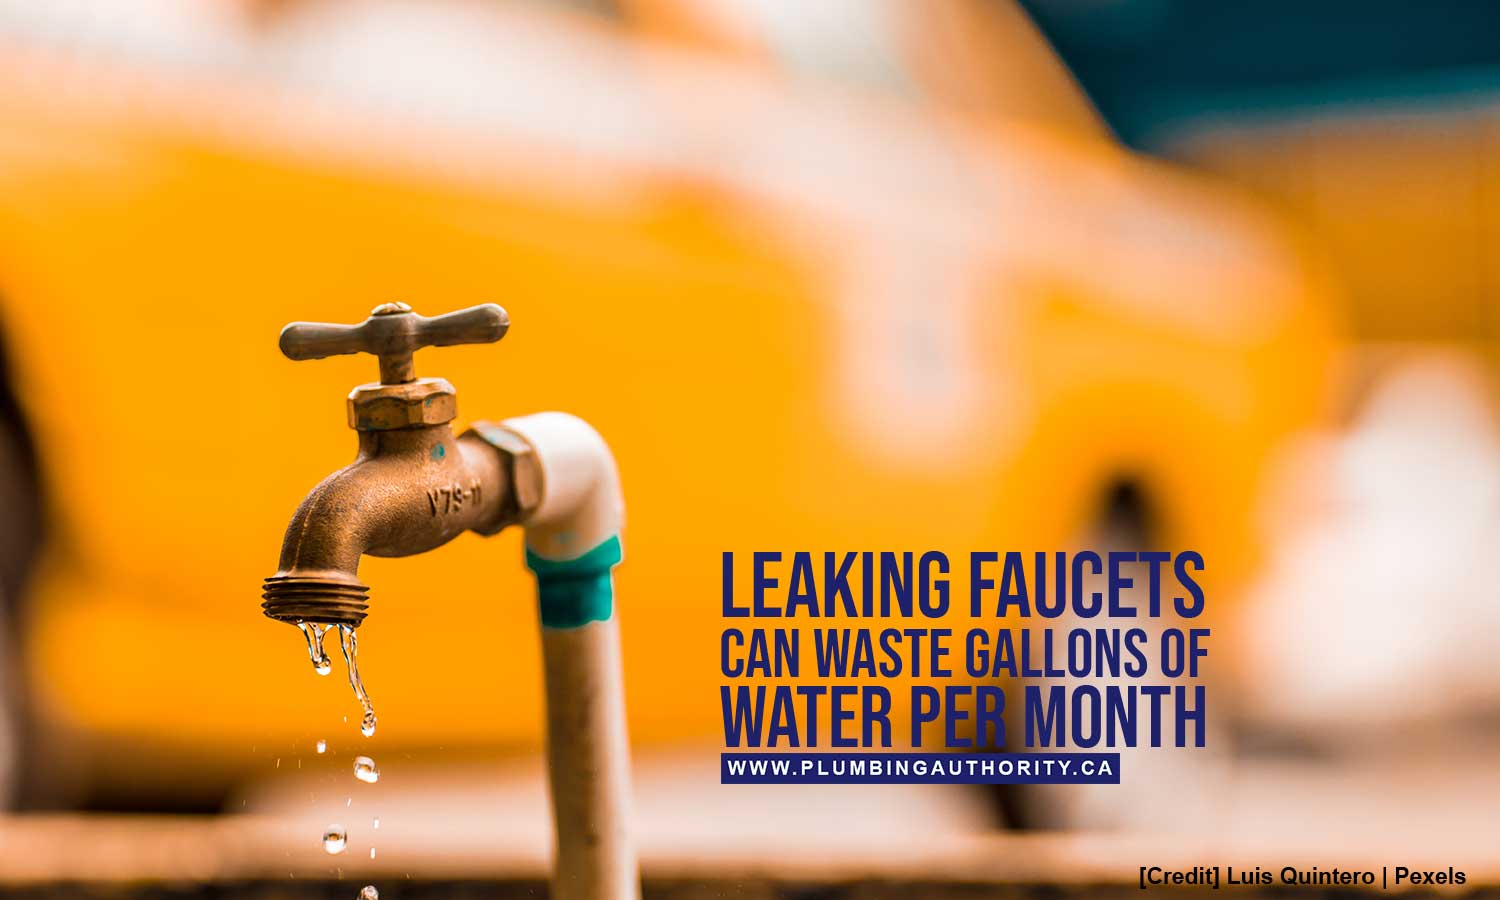 Leaking faucets can waste gallons of water